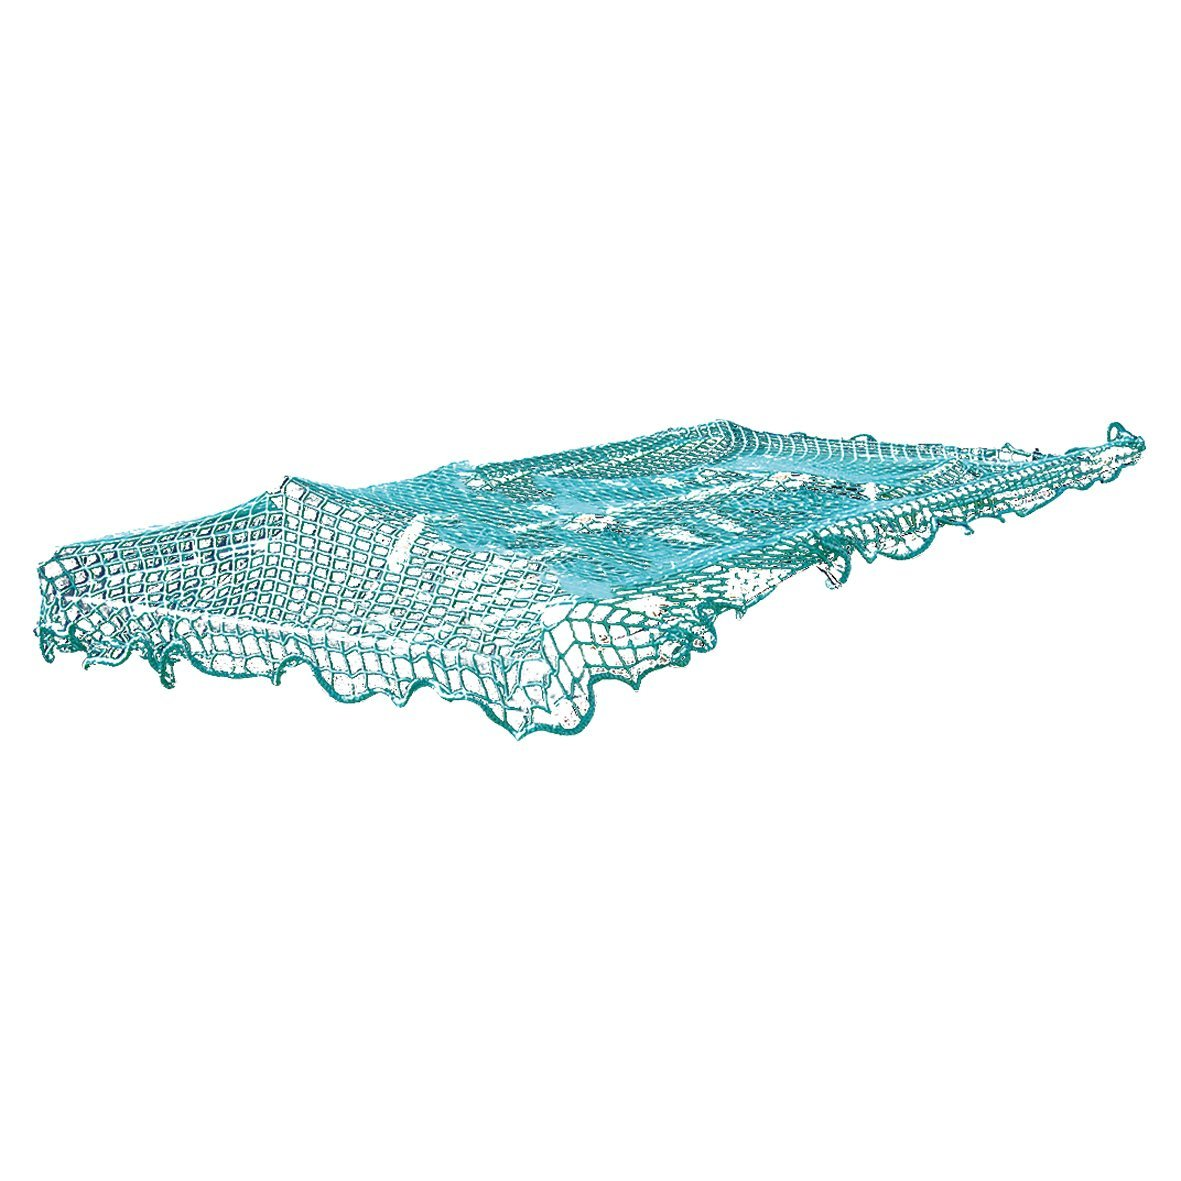 ProPlus 340745 Trailer Net with Elastic Cord PAT Europe BV